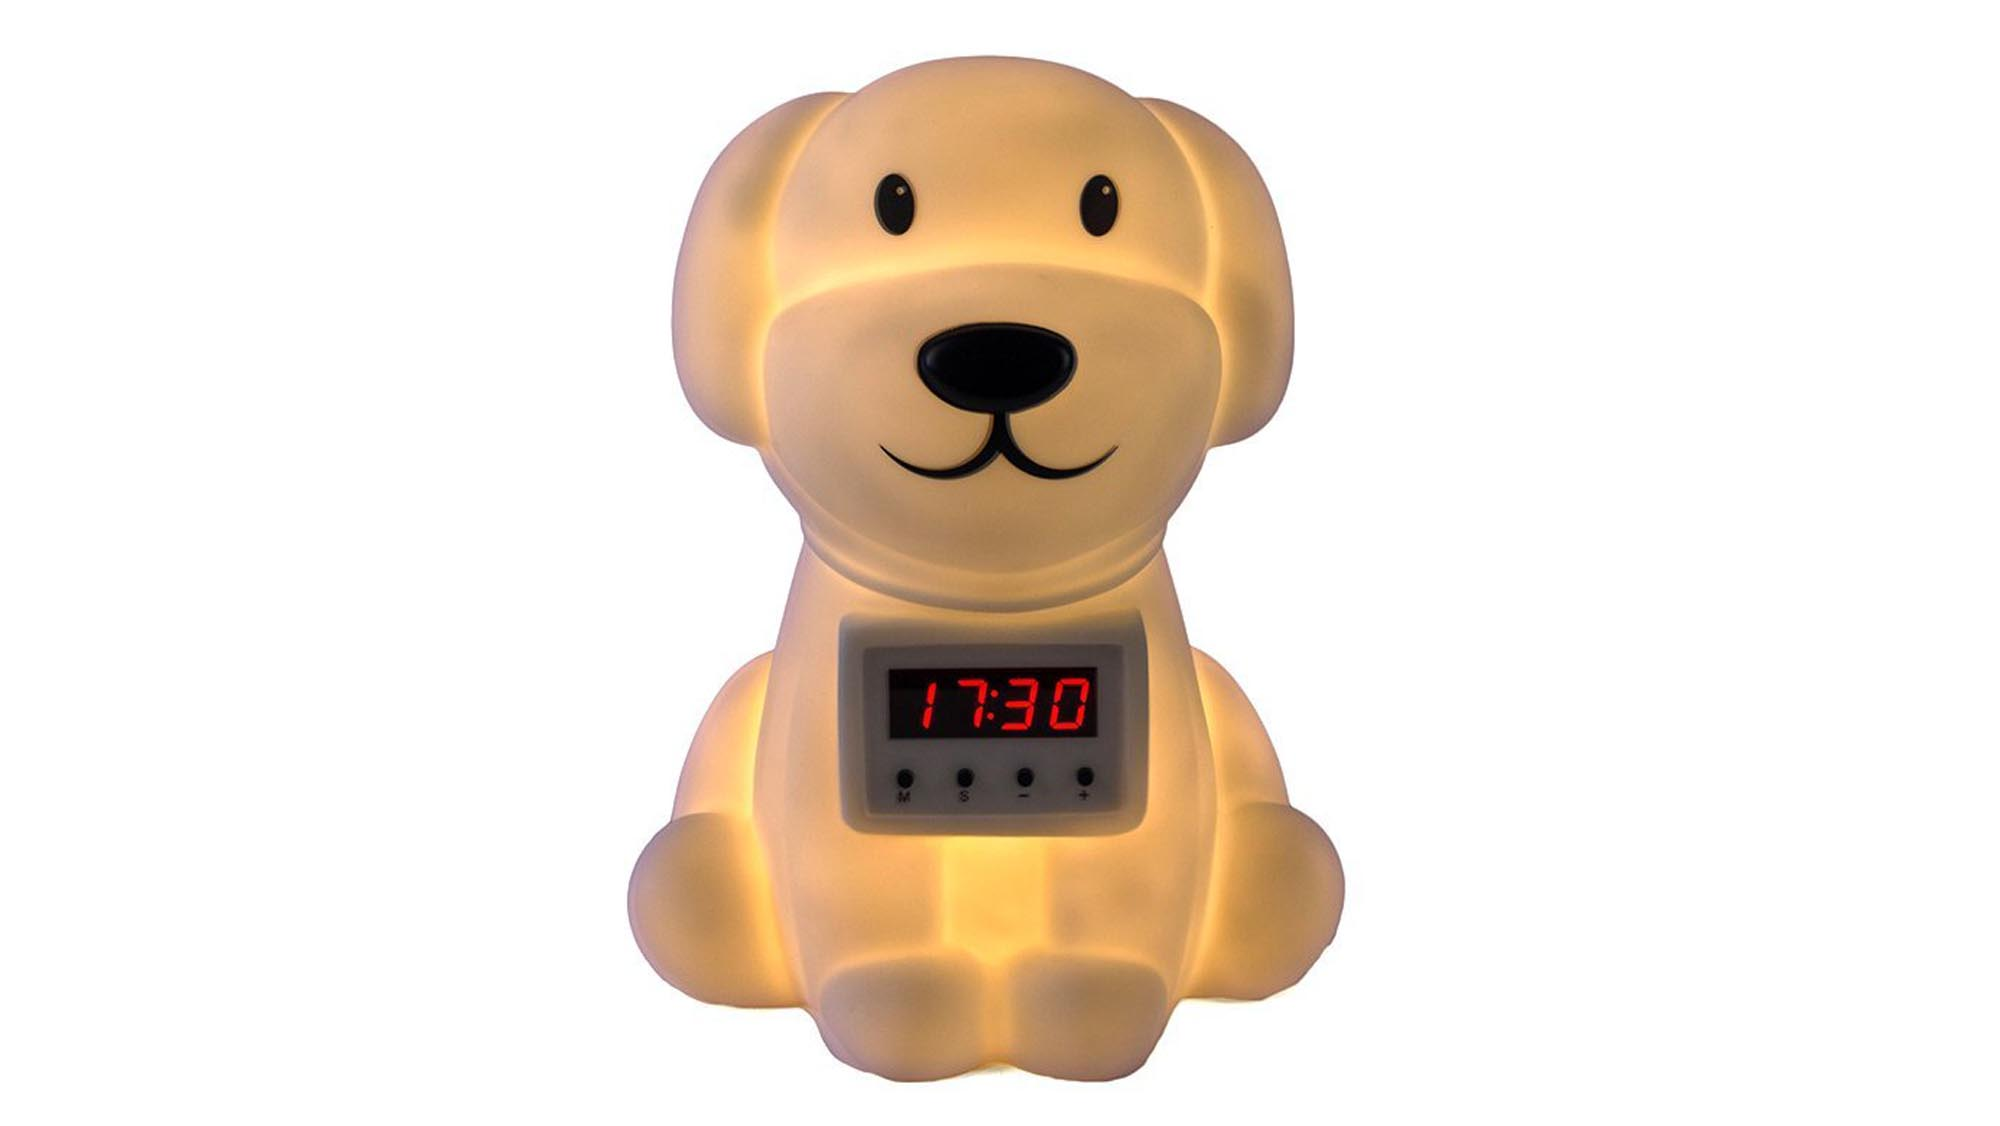 Best Baby Room Thermometer And Night Light